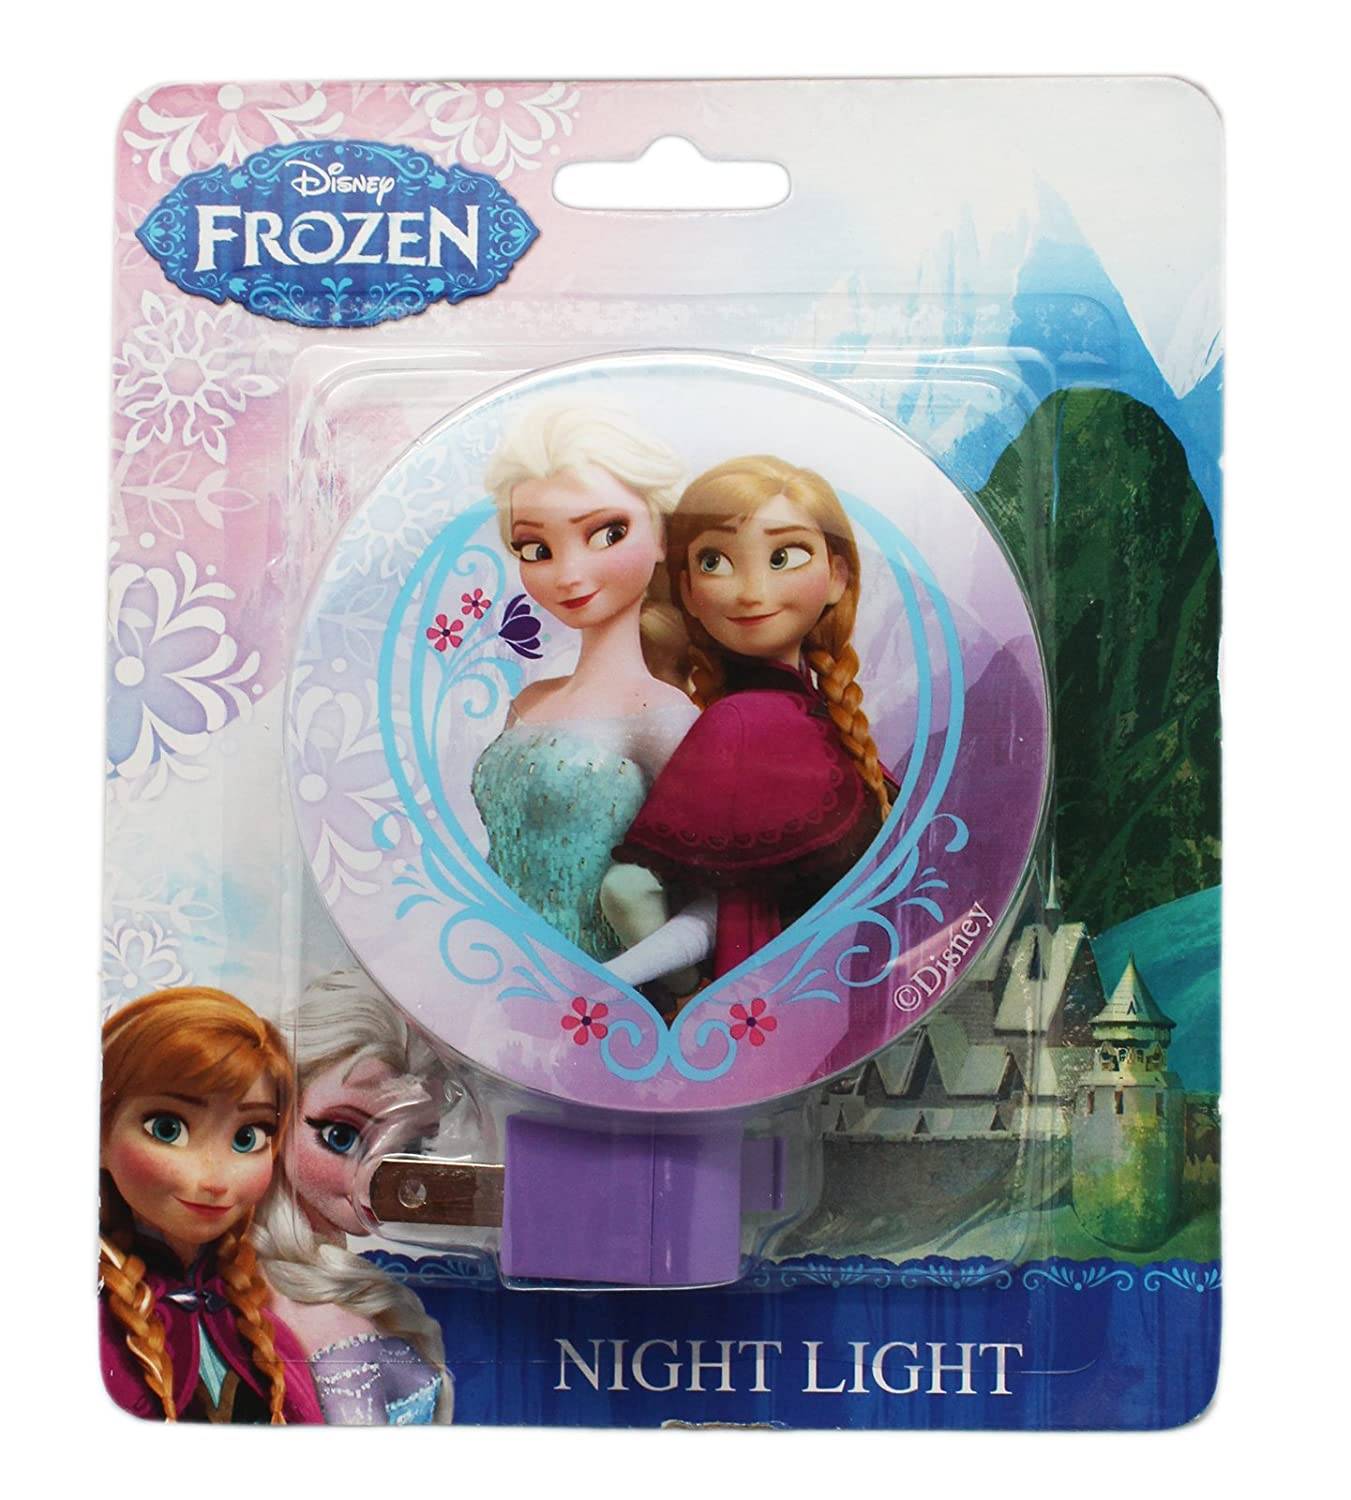 Amazon.com: Disney Frozen Anna y Elsa Plug In Luz Nocturna ...